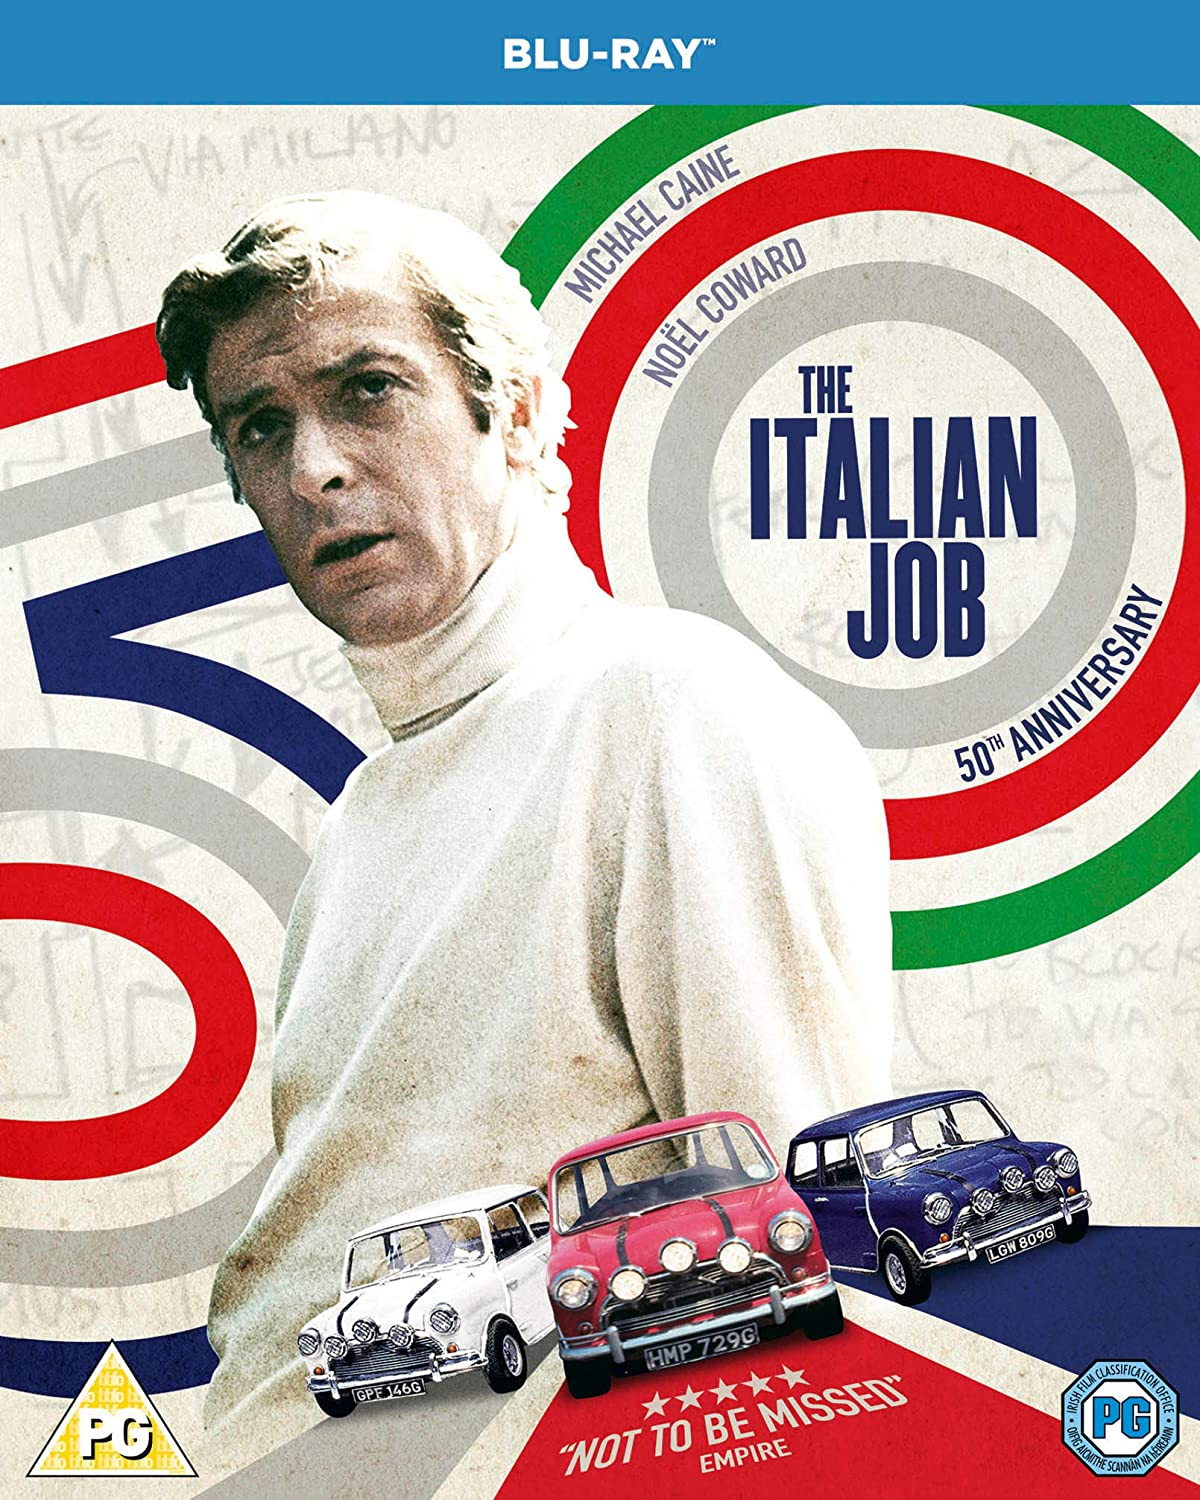 The Italian Job - 50th Anniversary Edition Blu-ray 1969: Amazon.co ...